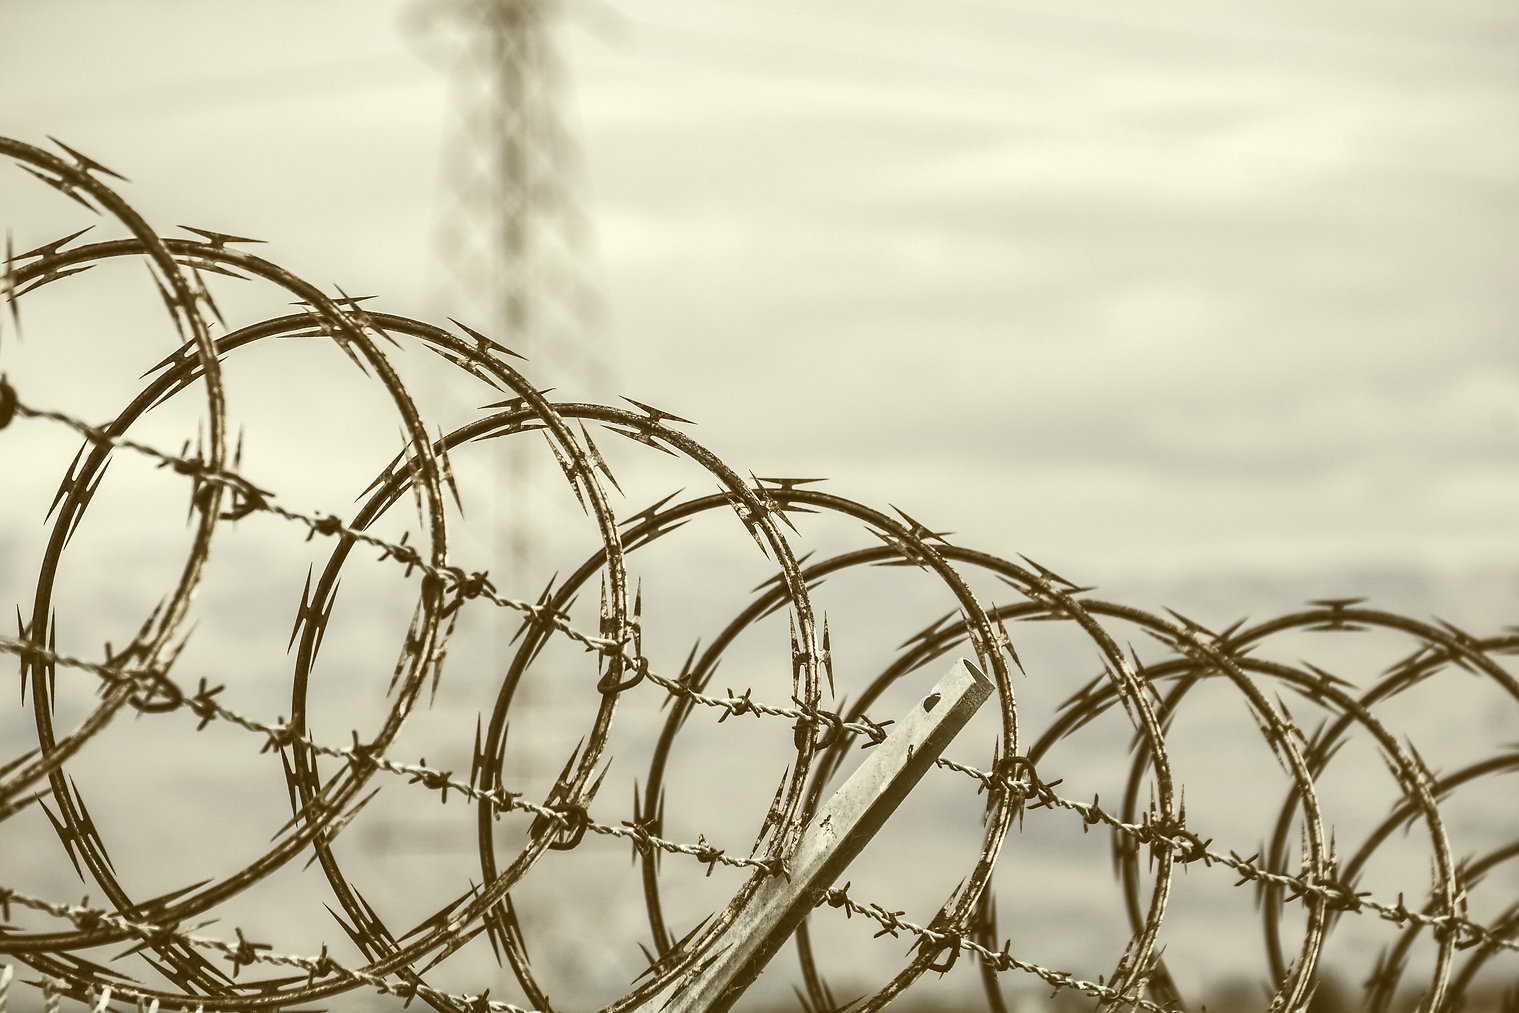 razor-barbed-wire-security-fence-califor